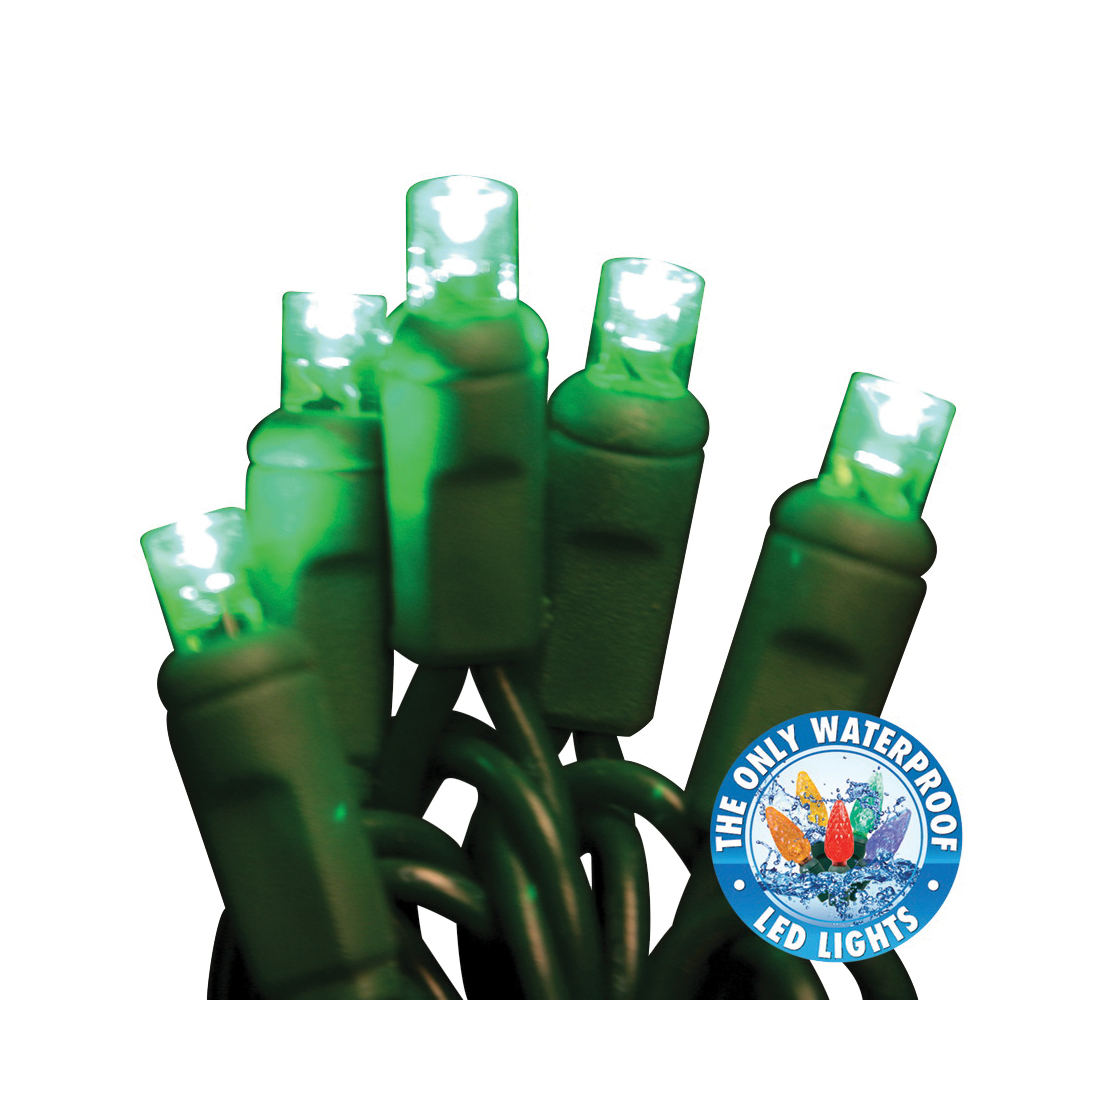 Picture of Holiday Bright Lights LEDBX-WA50-GR6 Light Set, 50 -Lamp, LED Lamp, Green Lamp, 50000 hr Average Life, 26 ft L